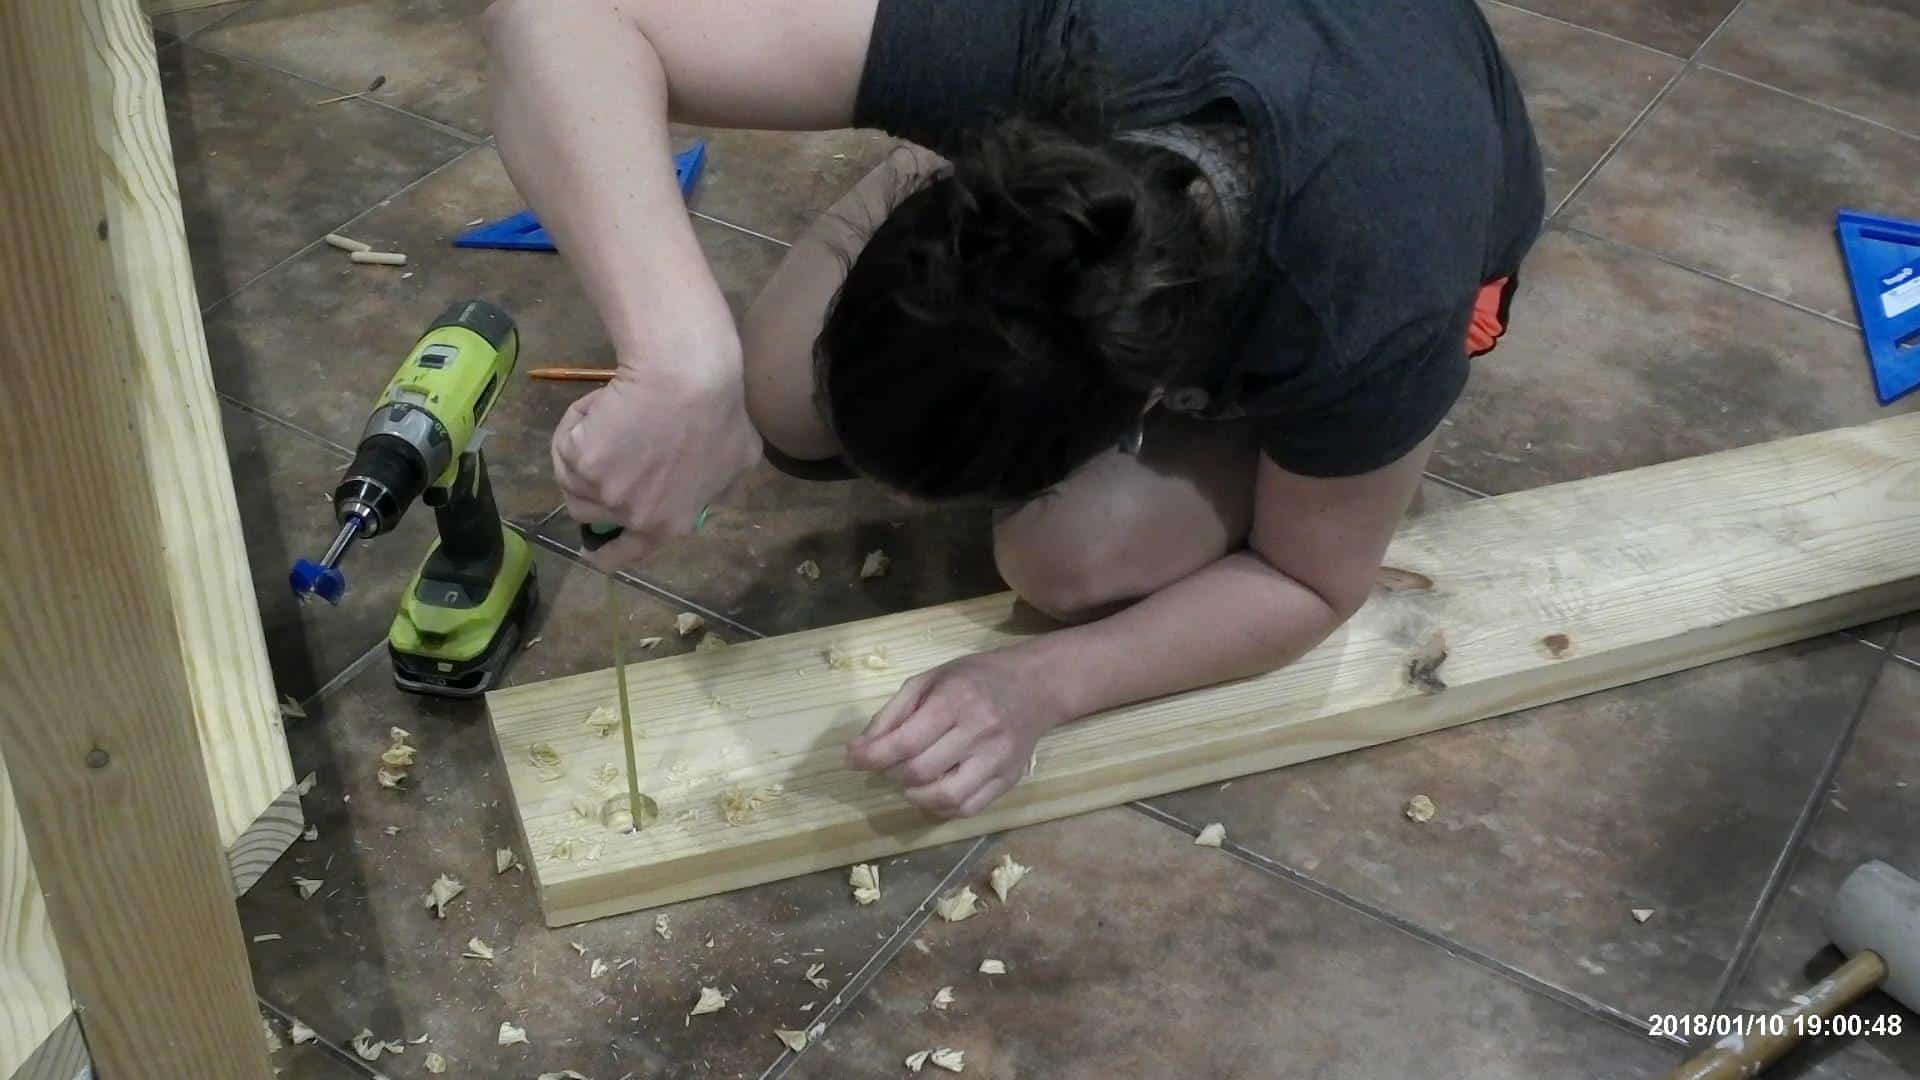 DIY Queen Bed Frame - measuring the depth of the holes